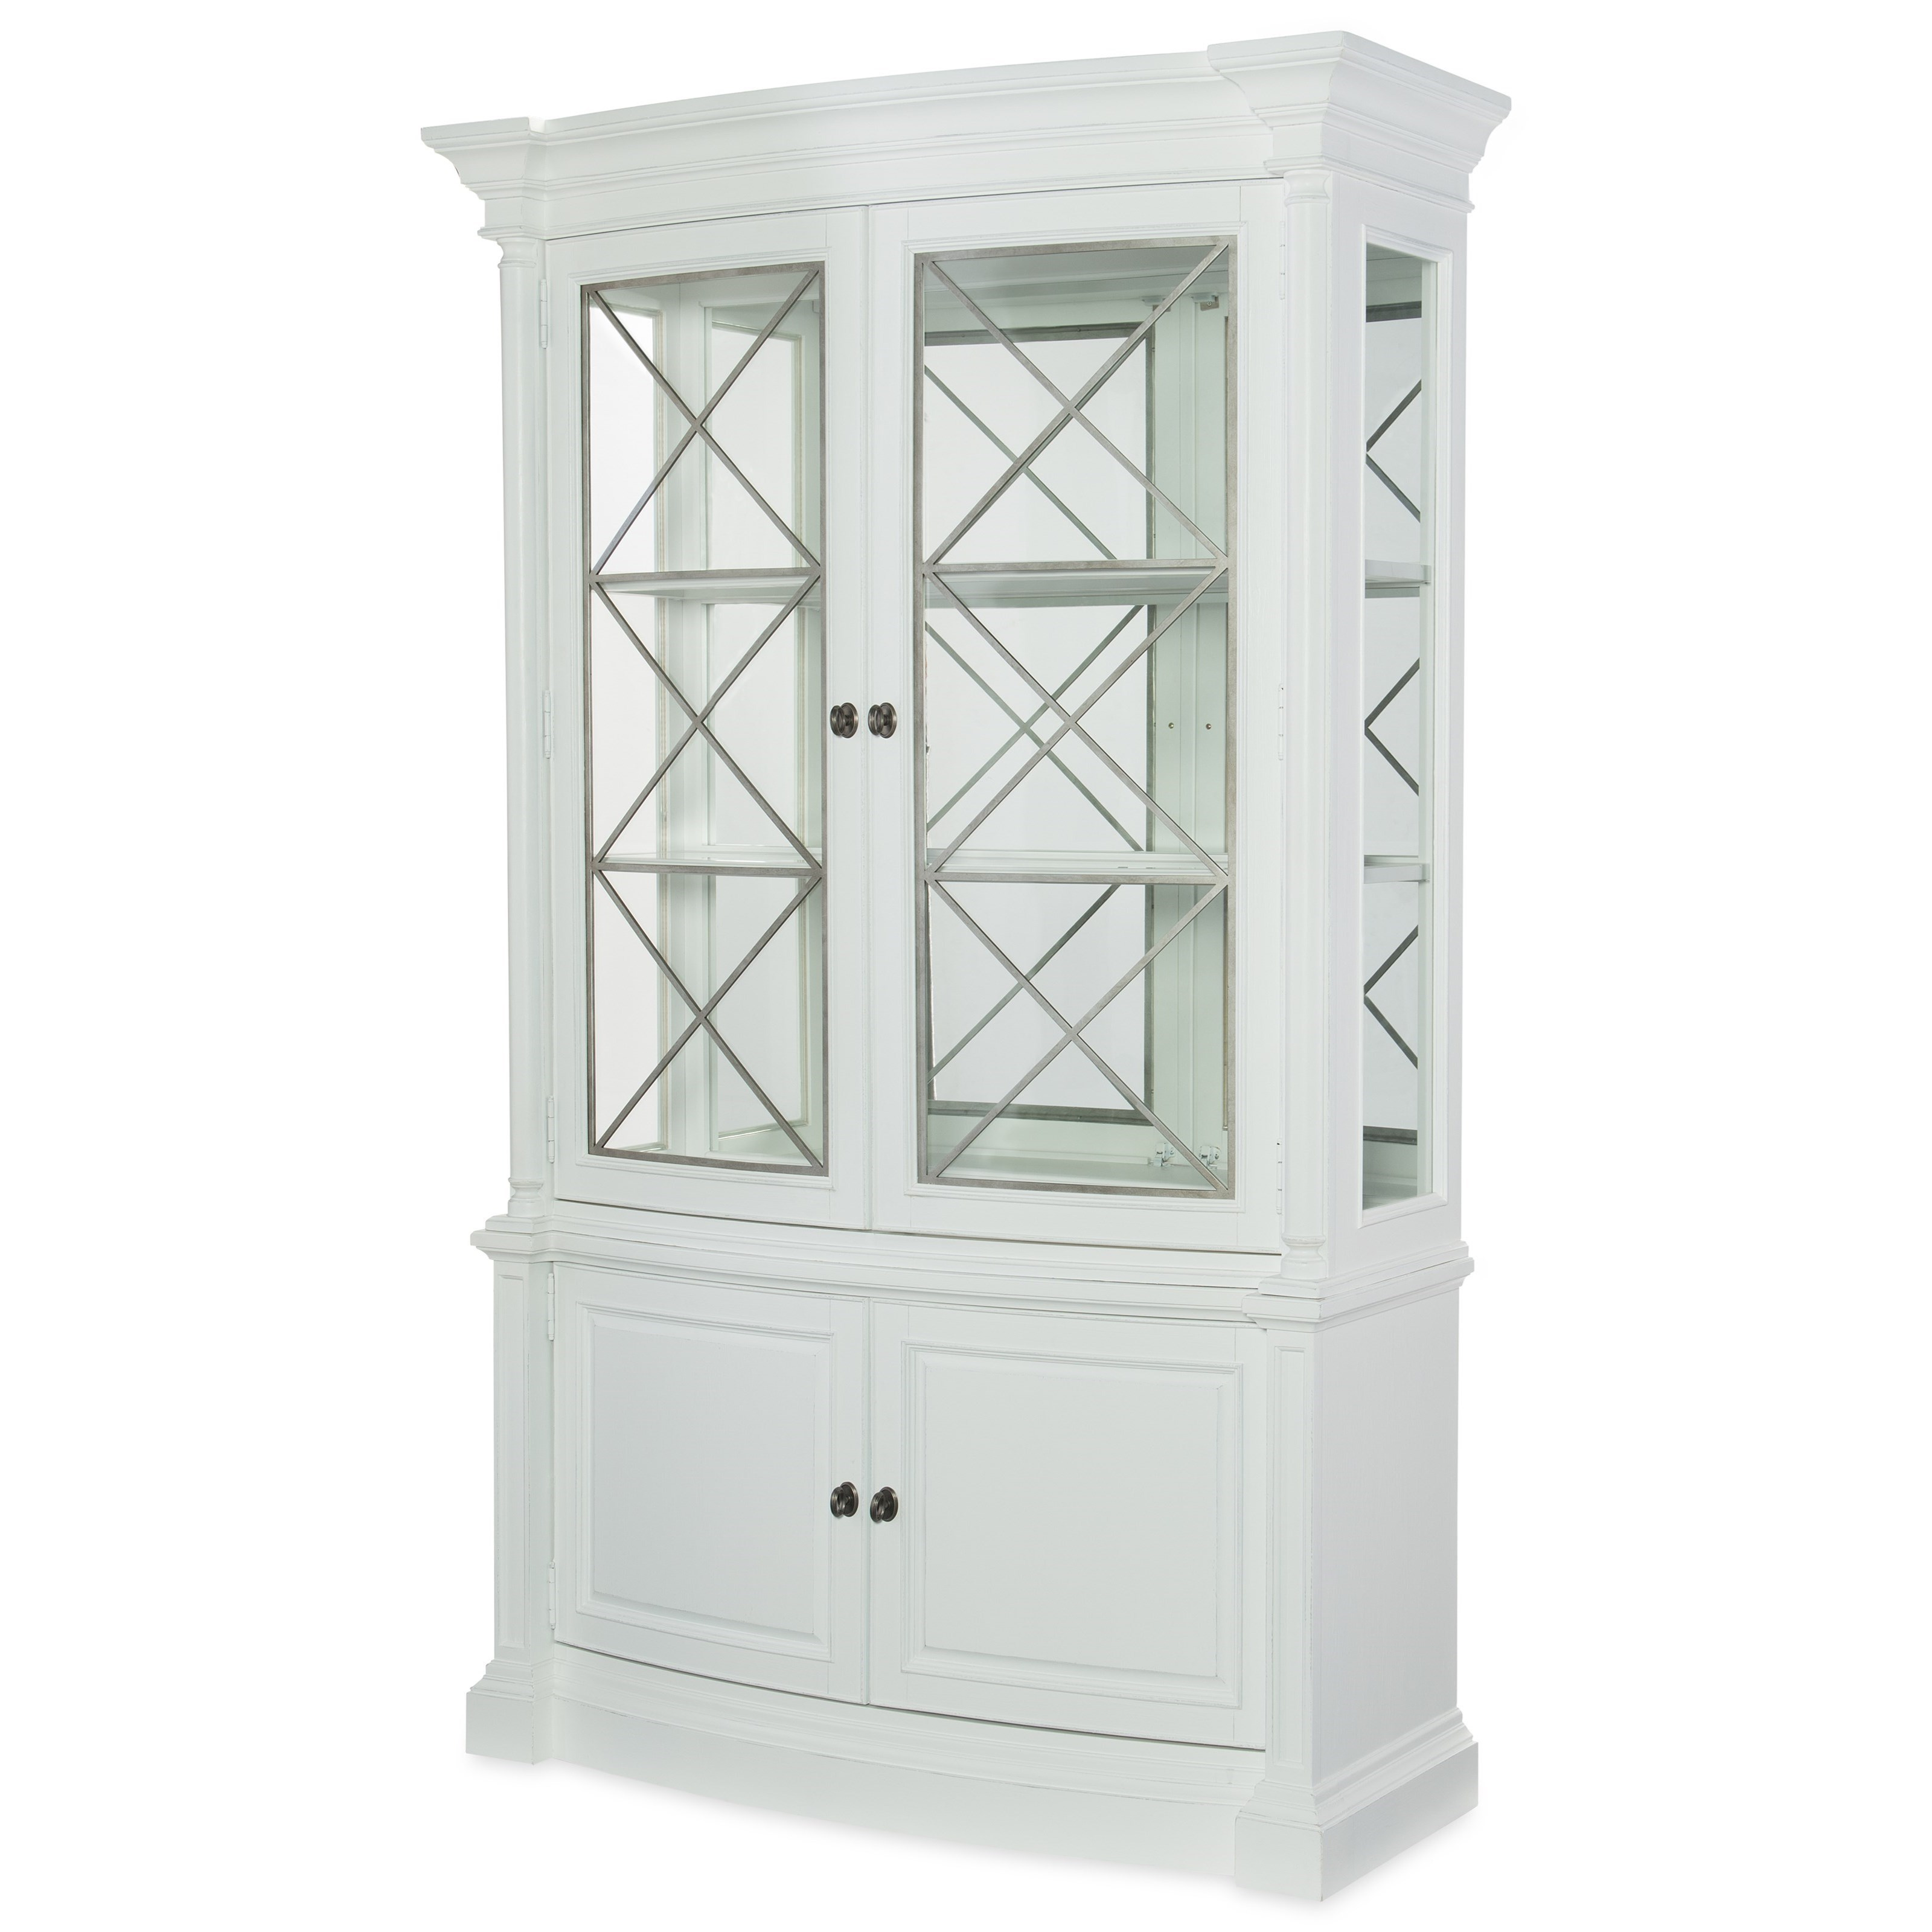 Rachael Ray Home by Legacy Classic Upstate Display Cabinet - Item Number: 6041-174K